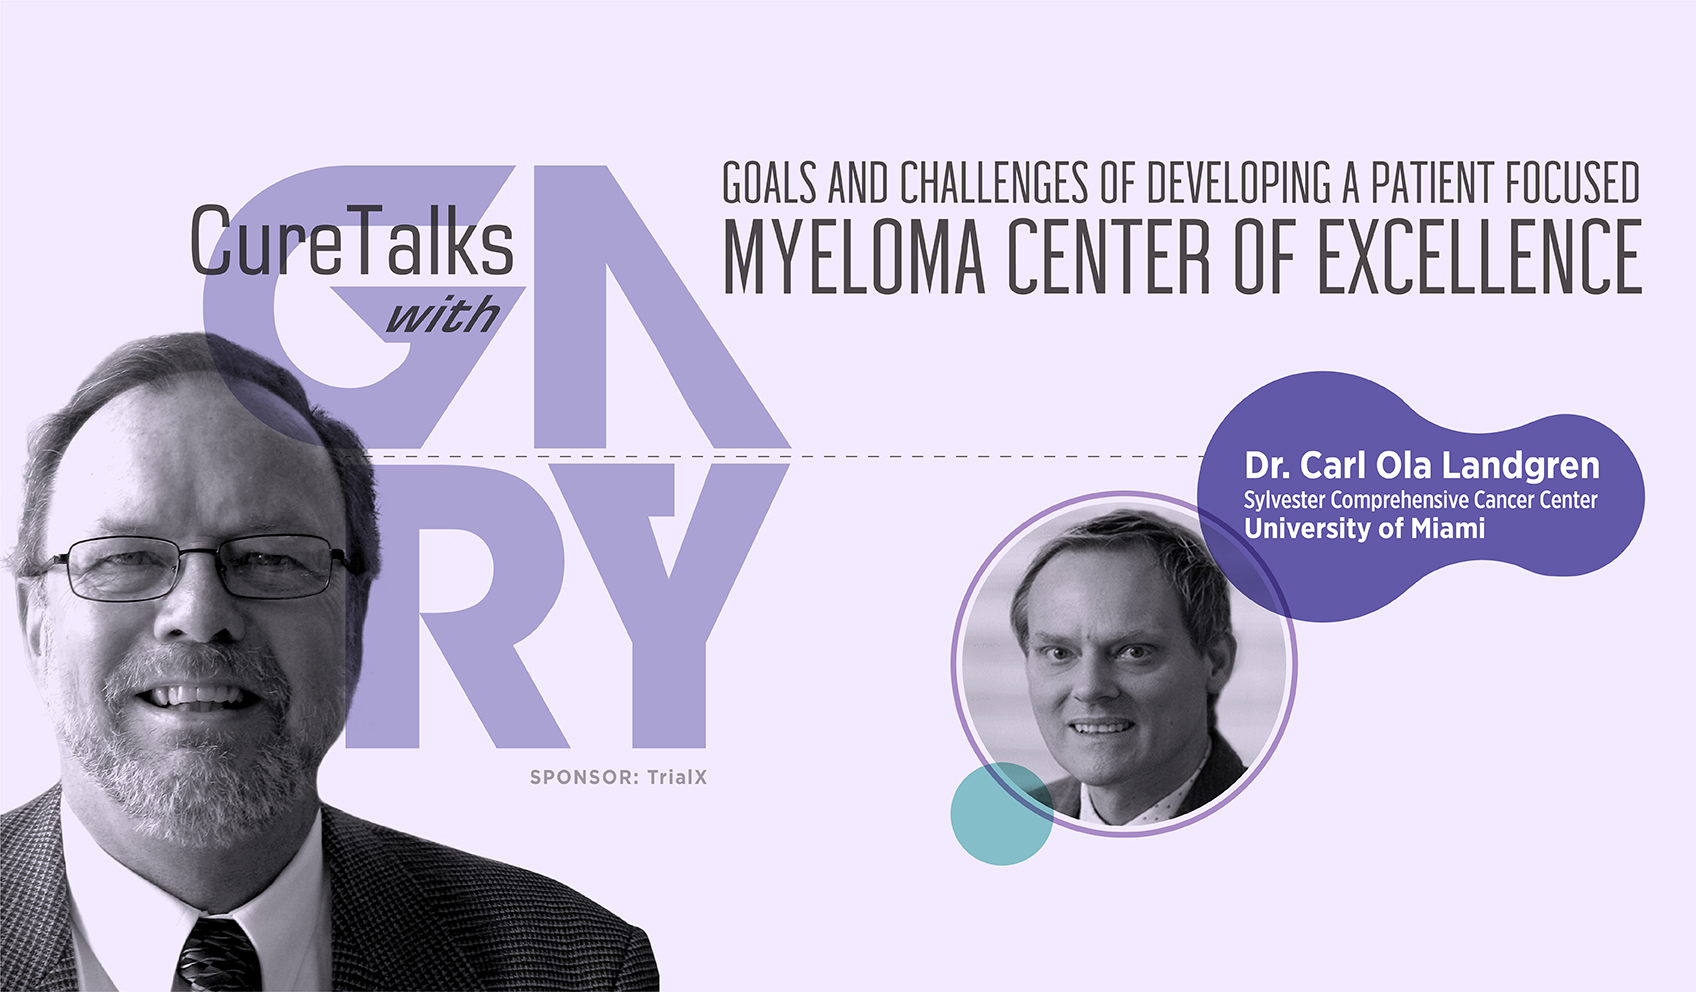 Goals and challenges of developing a patient focused myeloma center of excellence